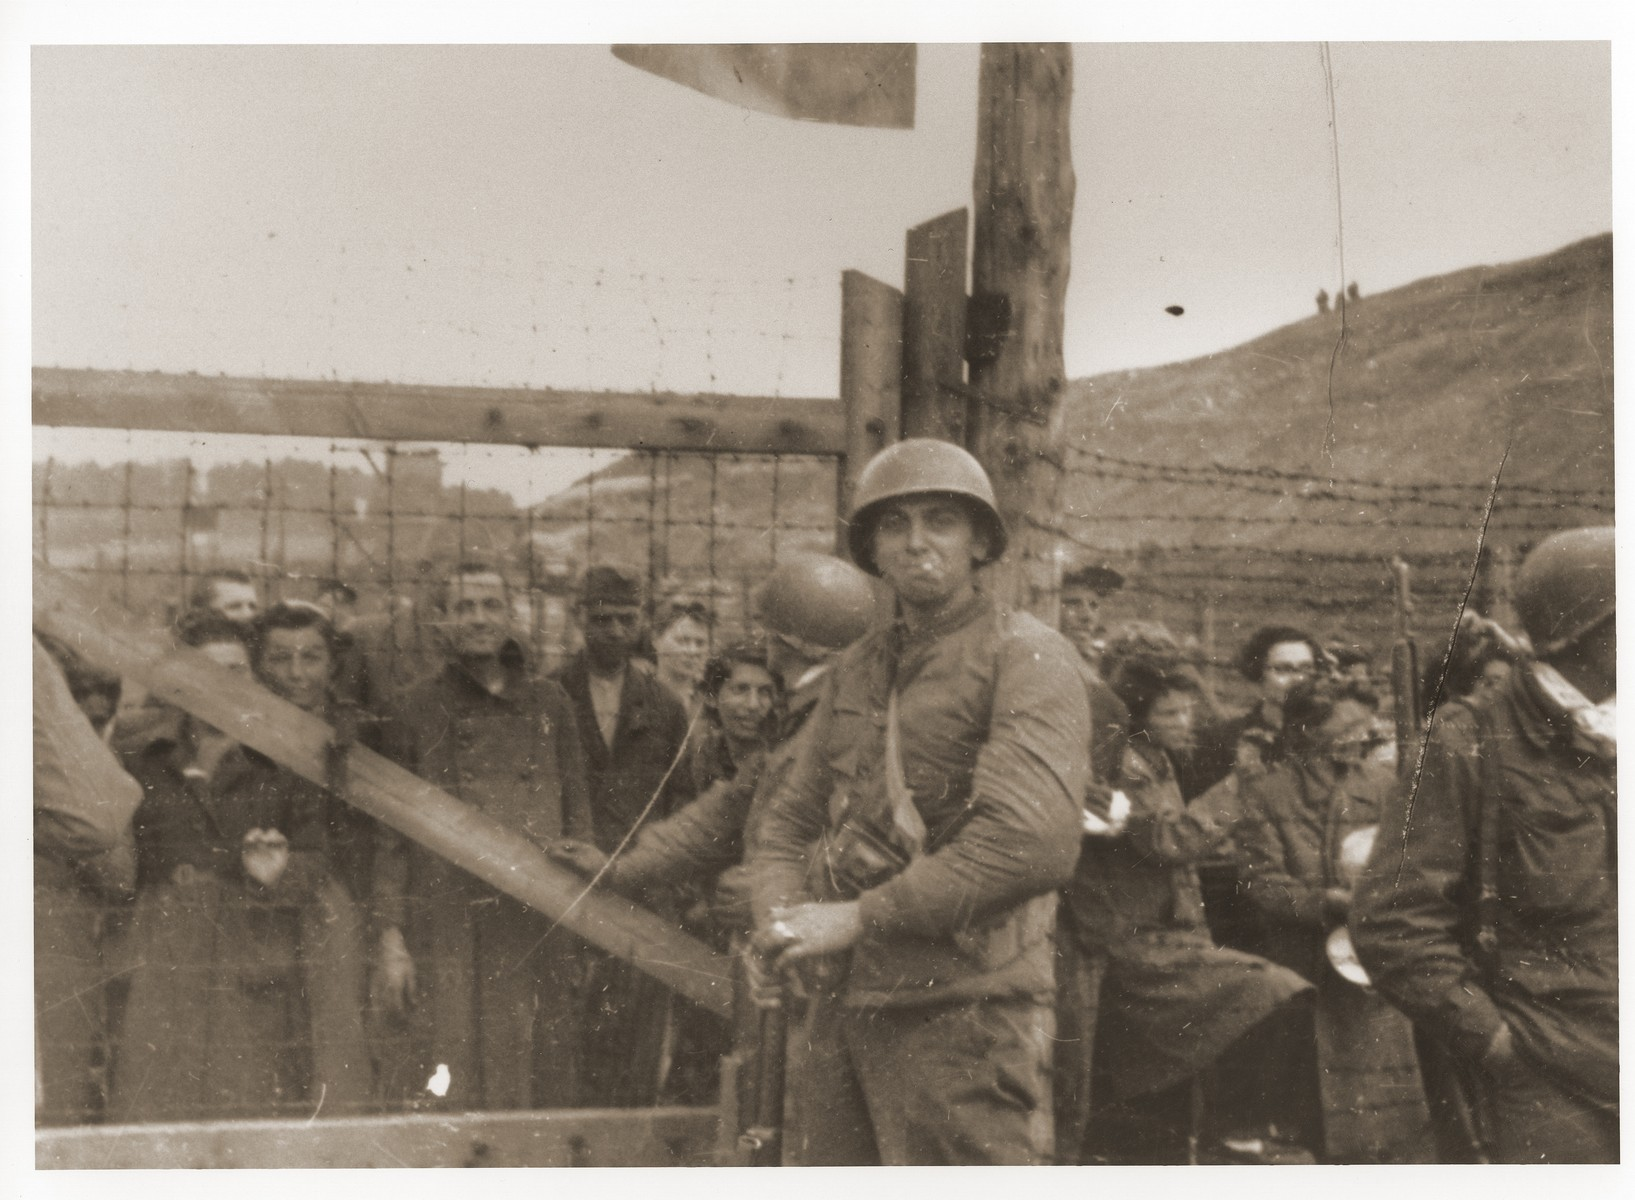 U.S. troops guard the entrance to the Russian camp at Mauthausen, which was under quarantine.